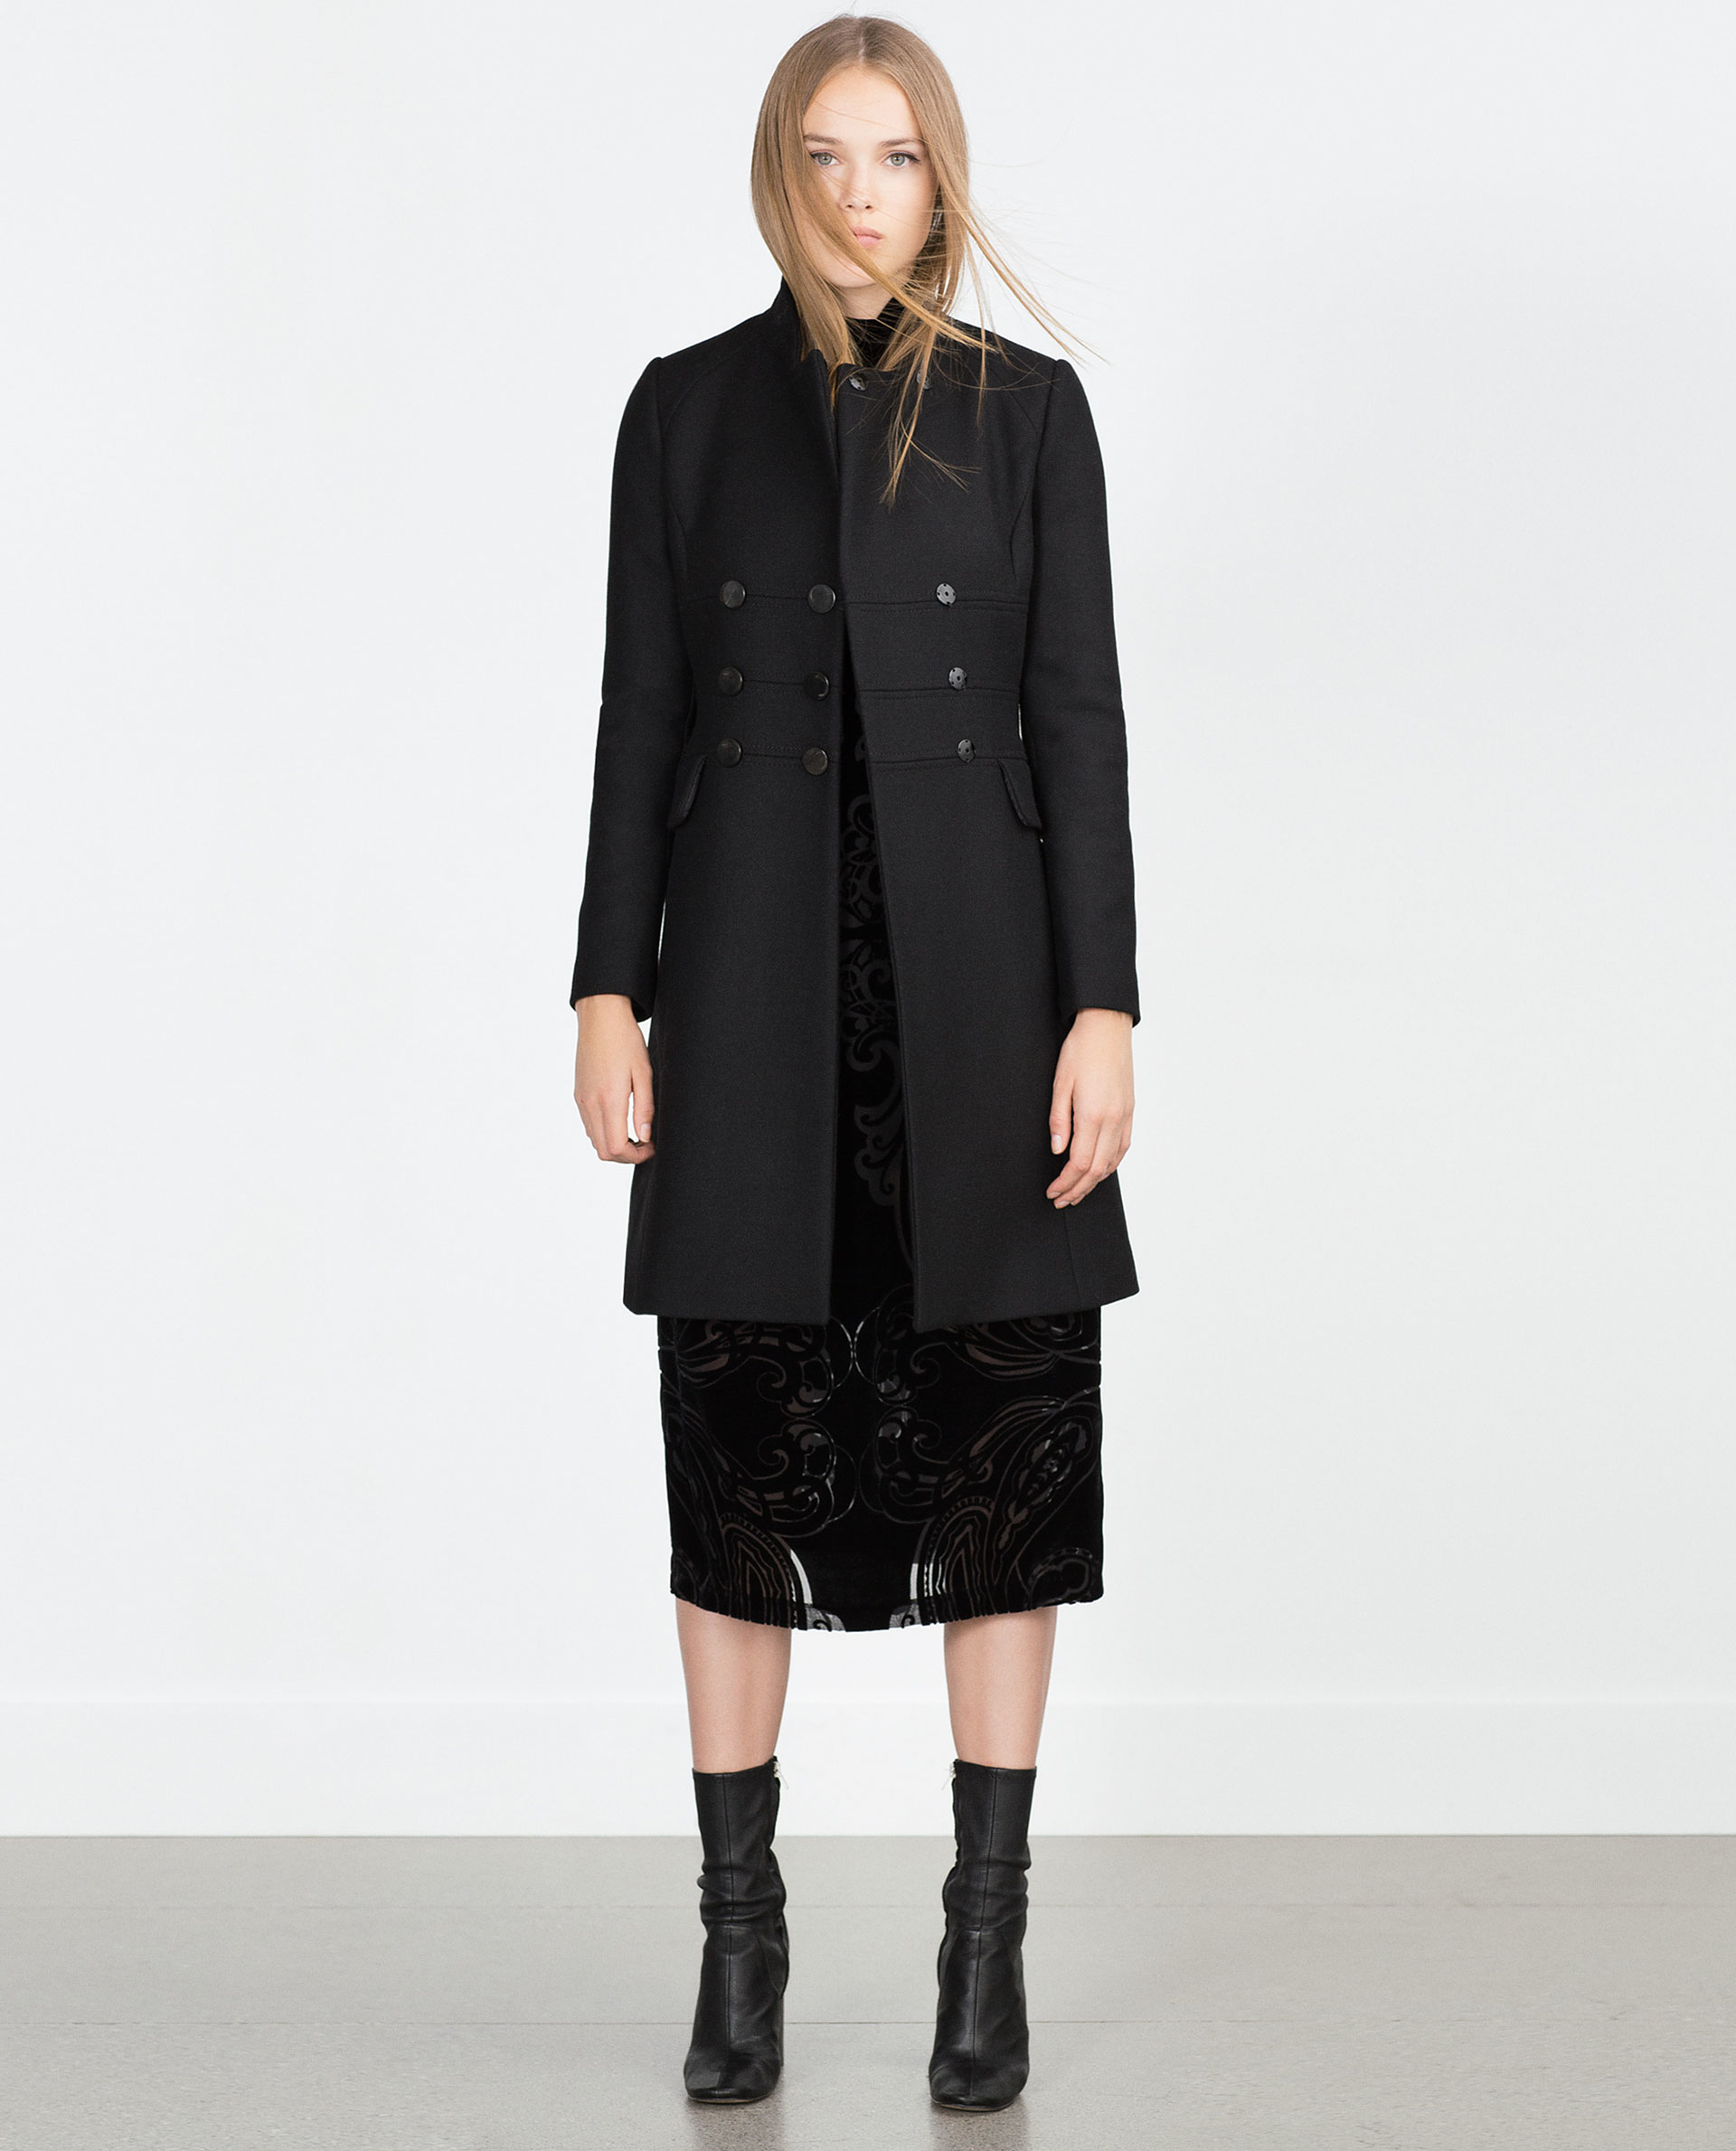 Zara Tailored Coat in Black | Lyst